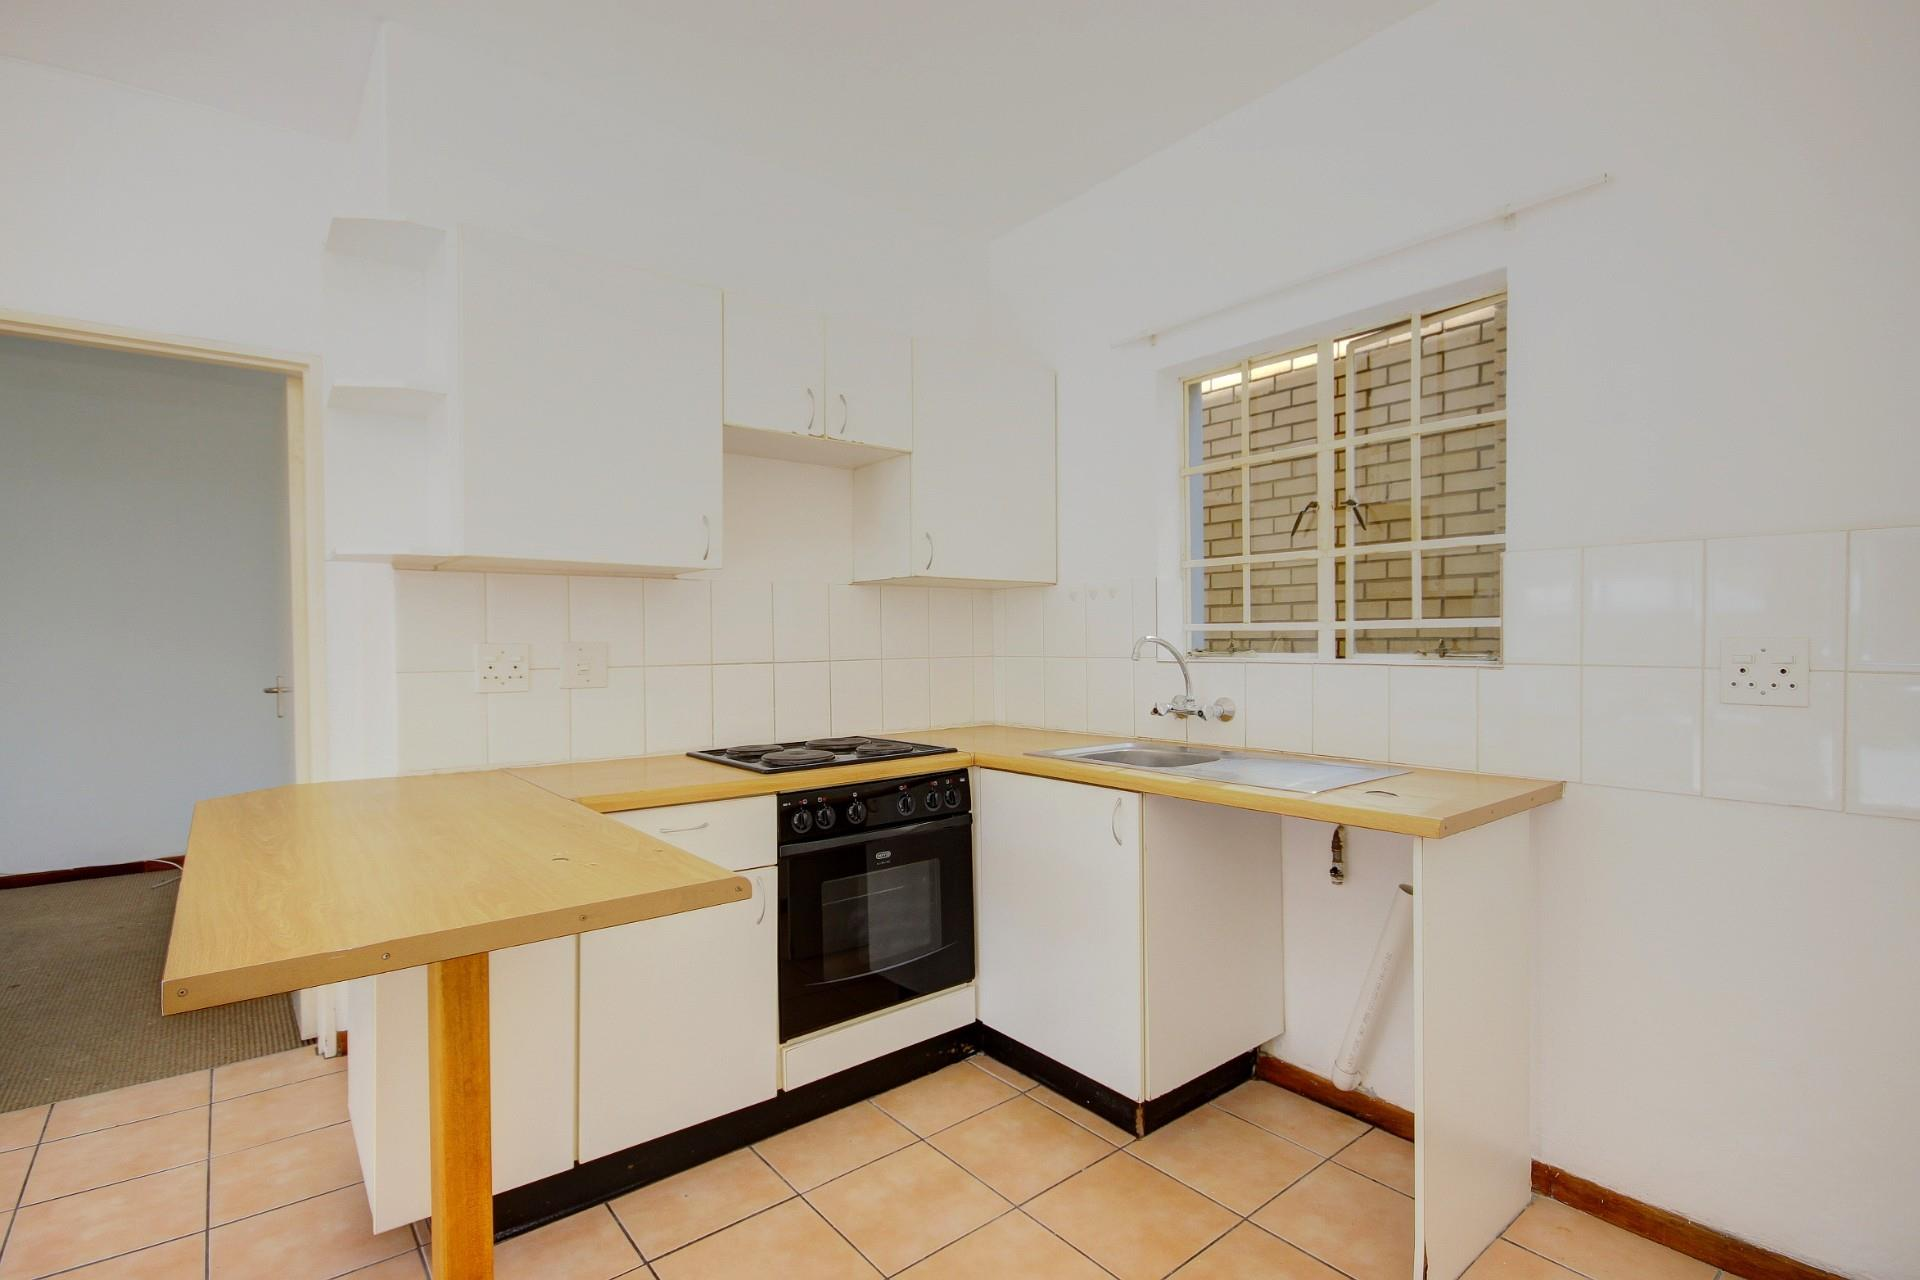 1 Bedroom Apartment / Flat For Sale in Ferndale